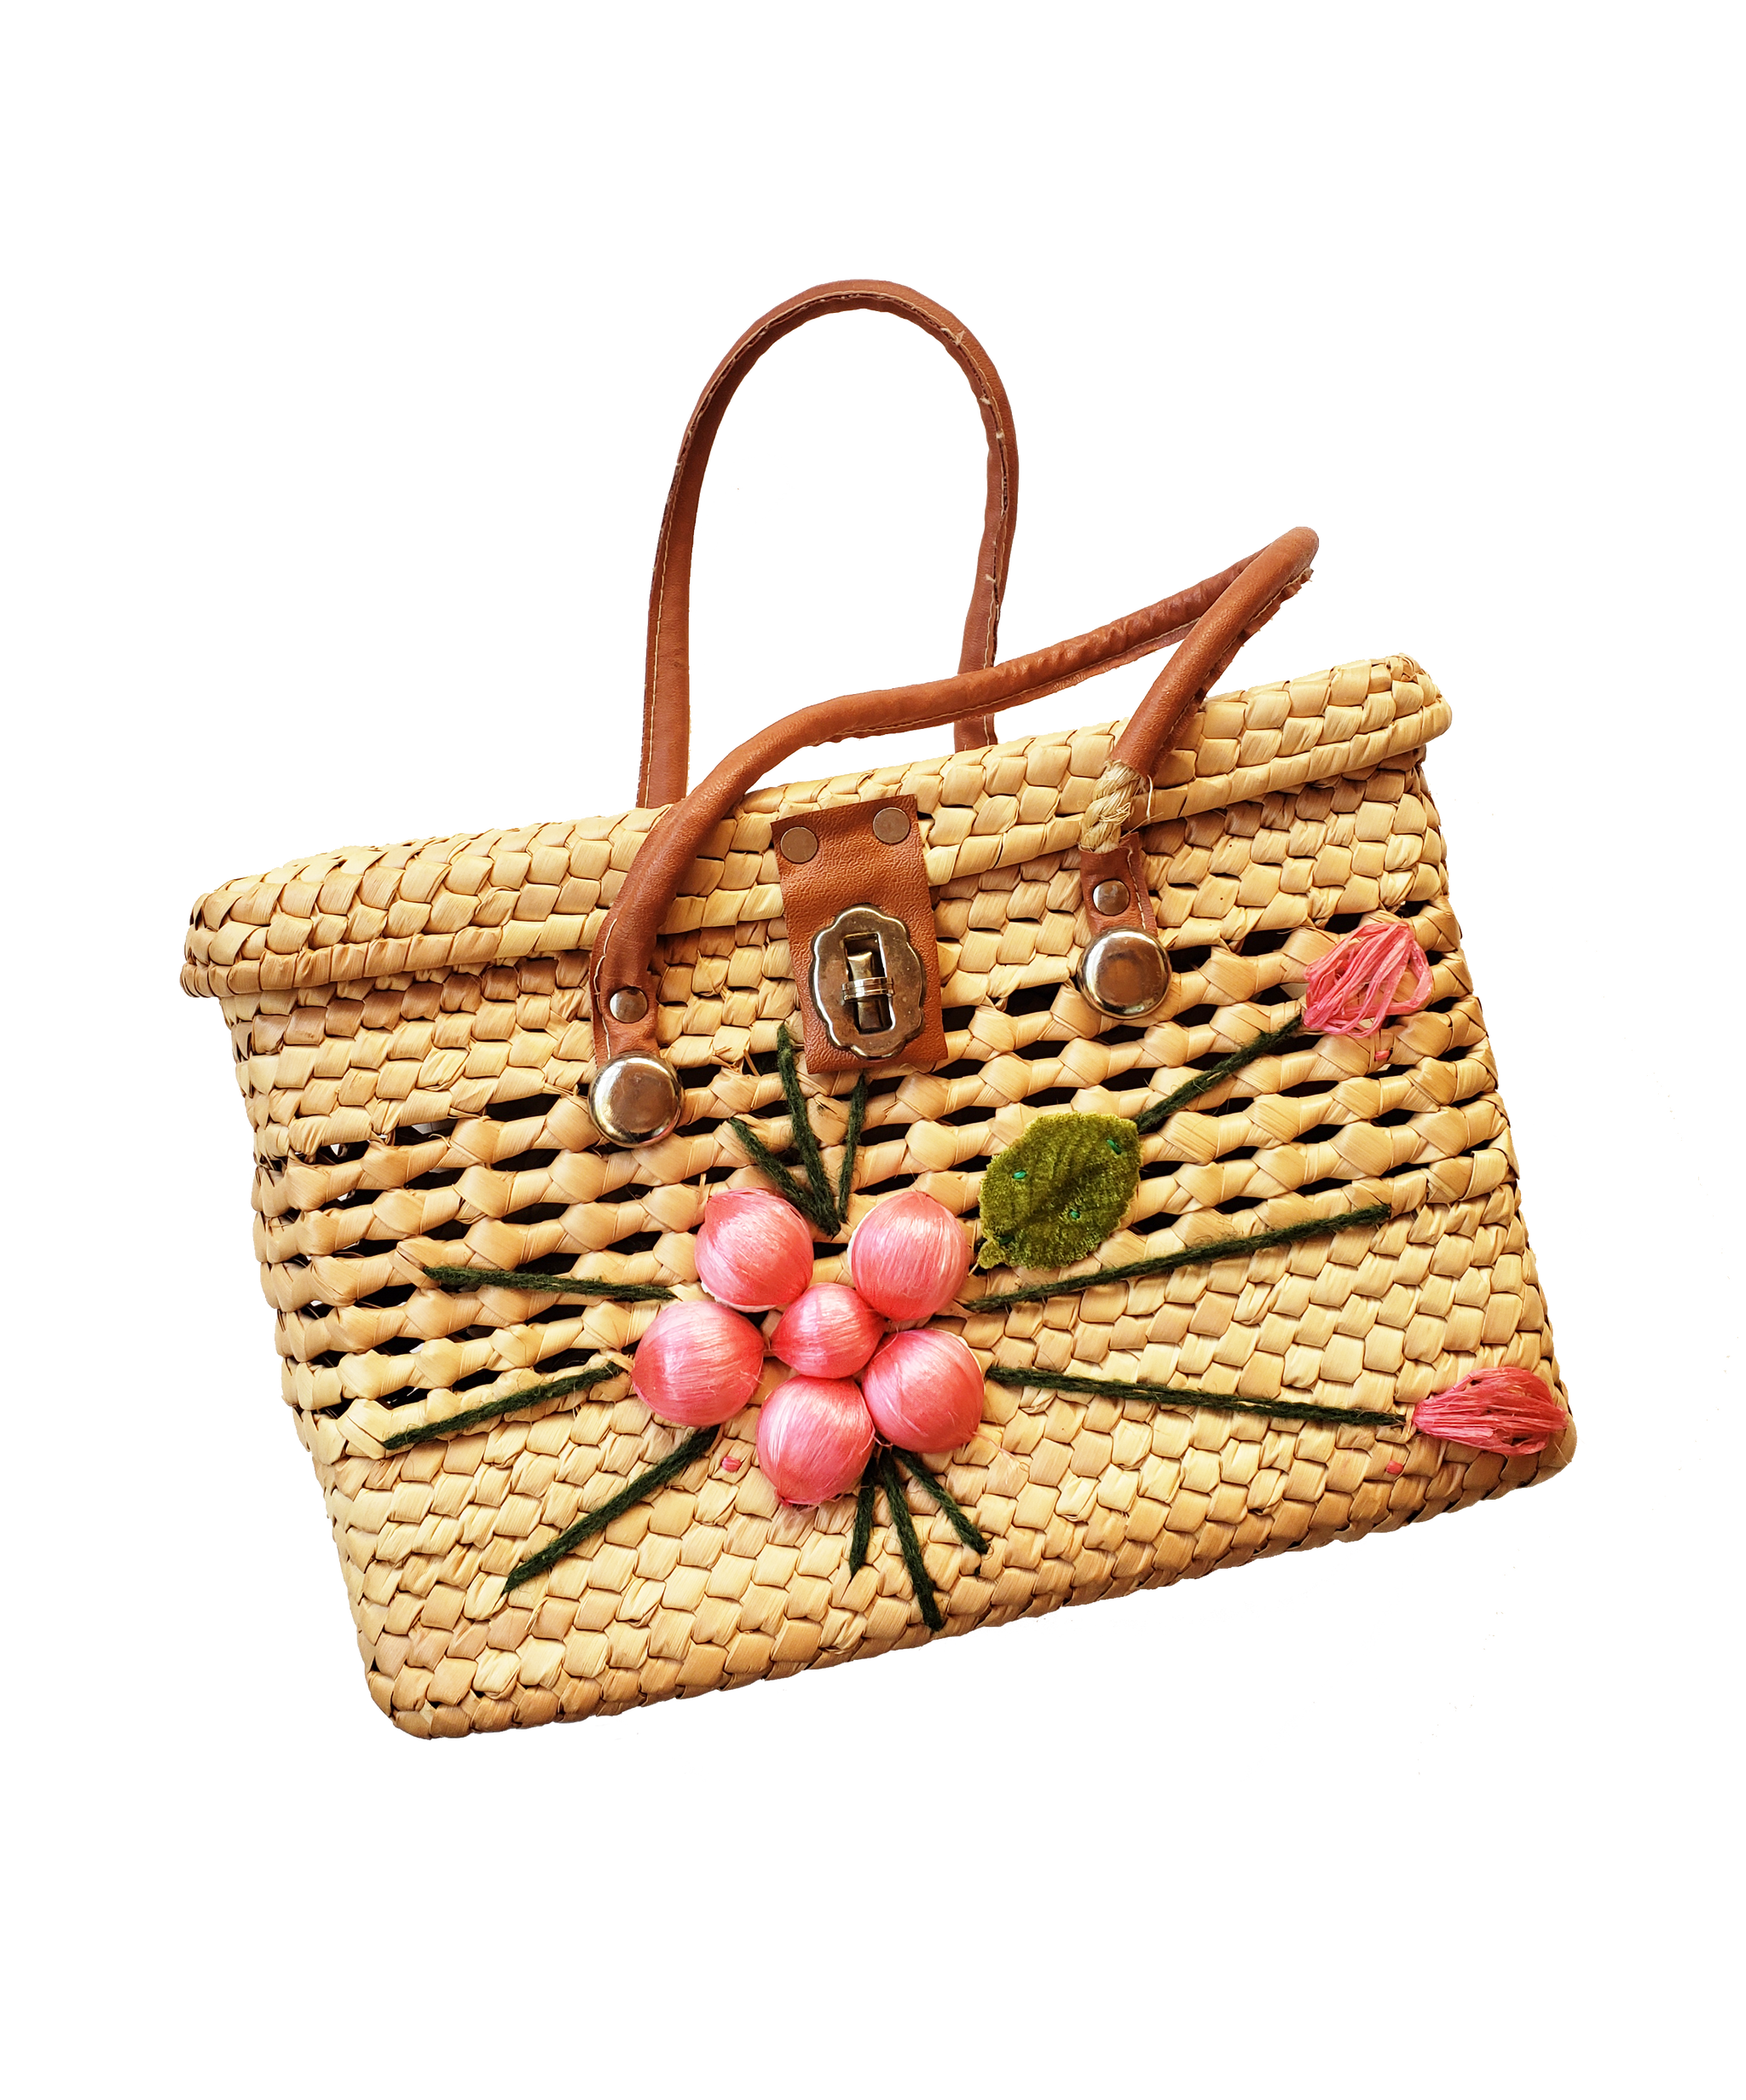 Summer's Day Wicker Handbag (Only 1)